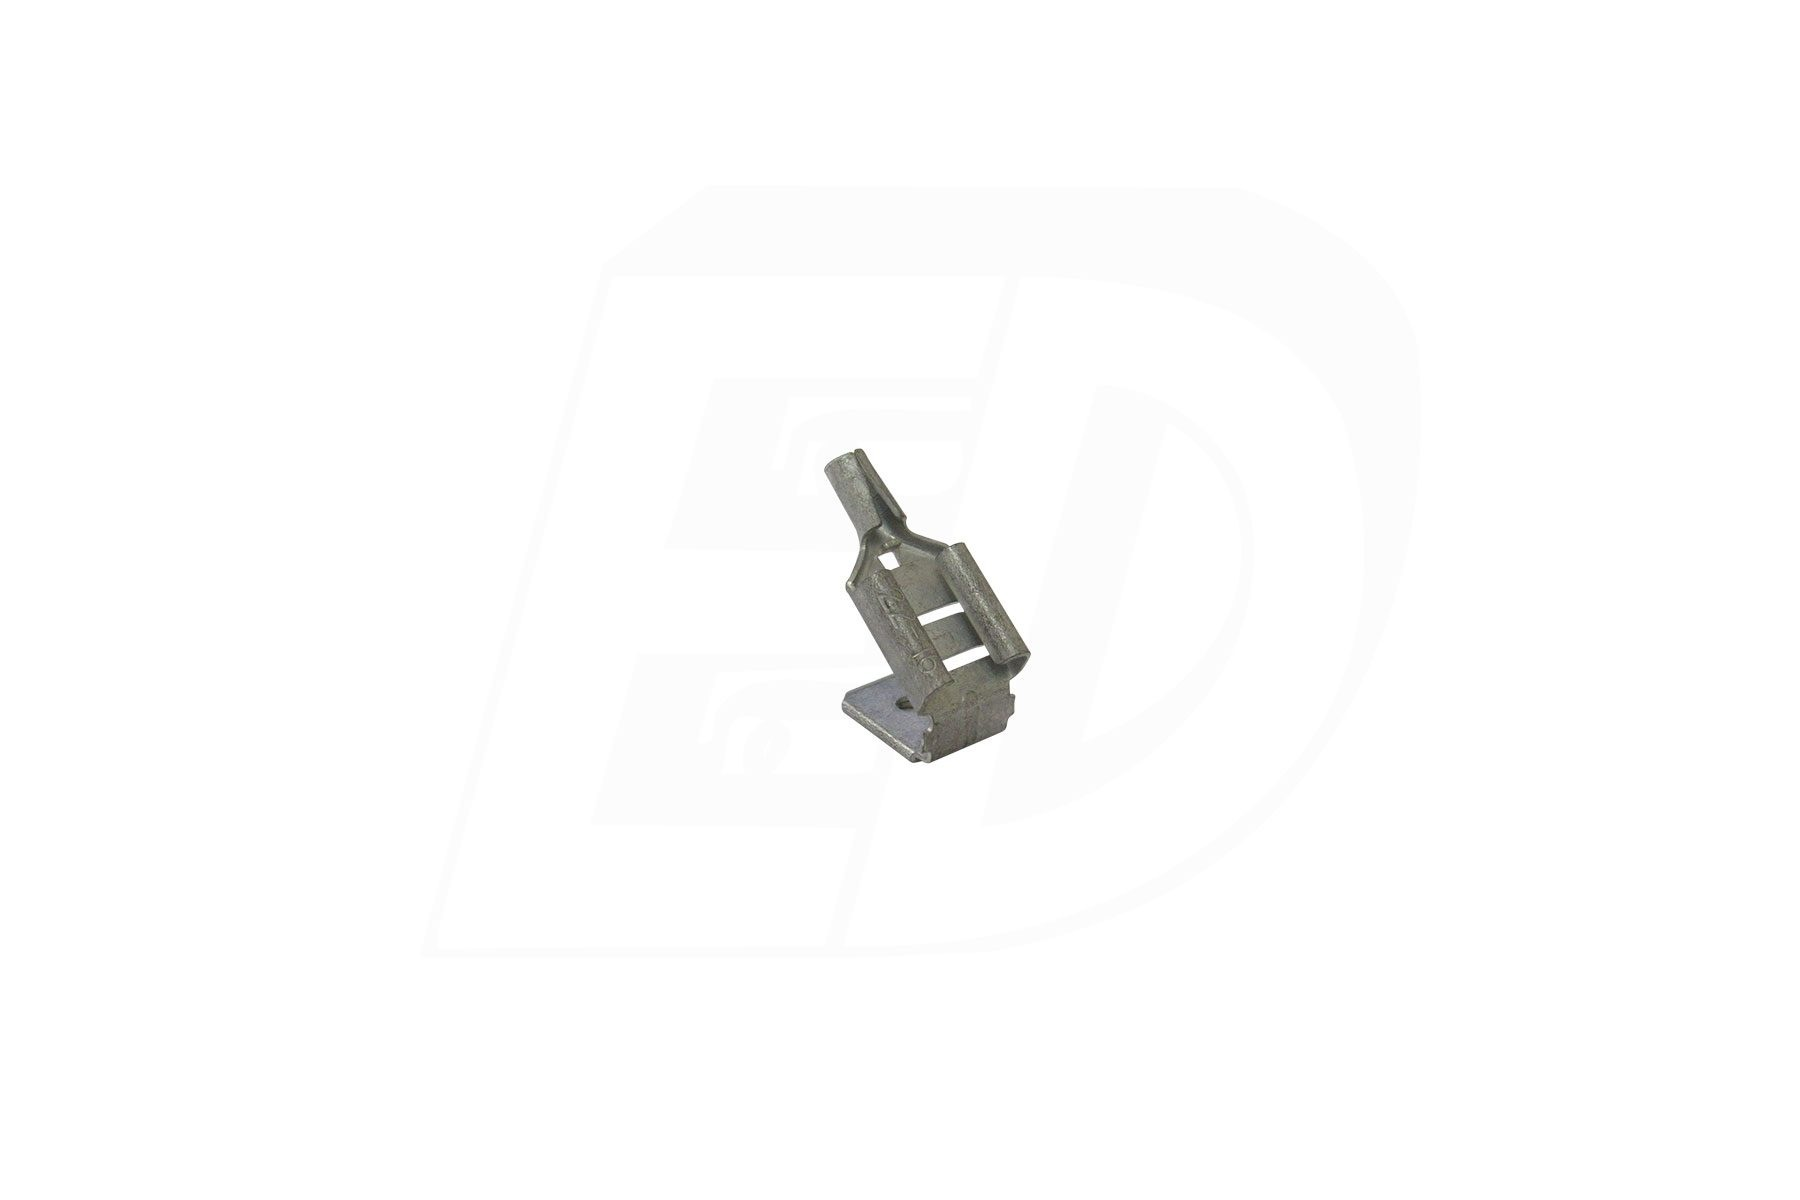 Butted Seam Piggyback quick-disconnect terminals 22 - 16 AWG